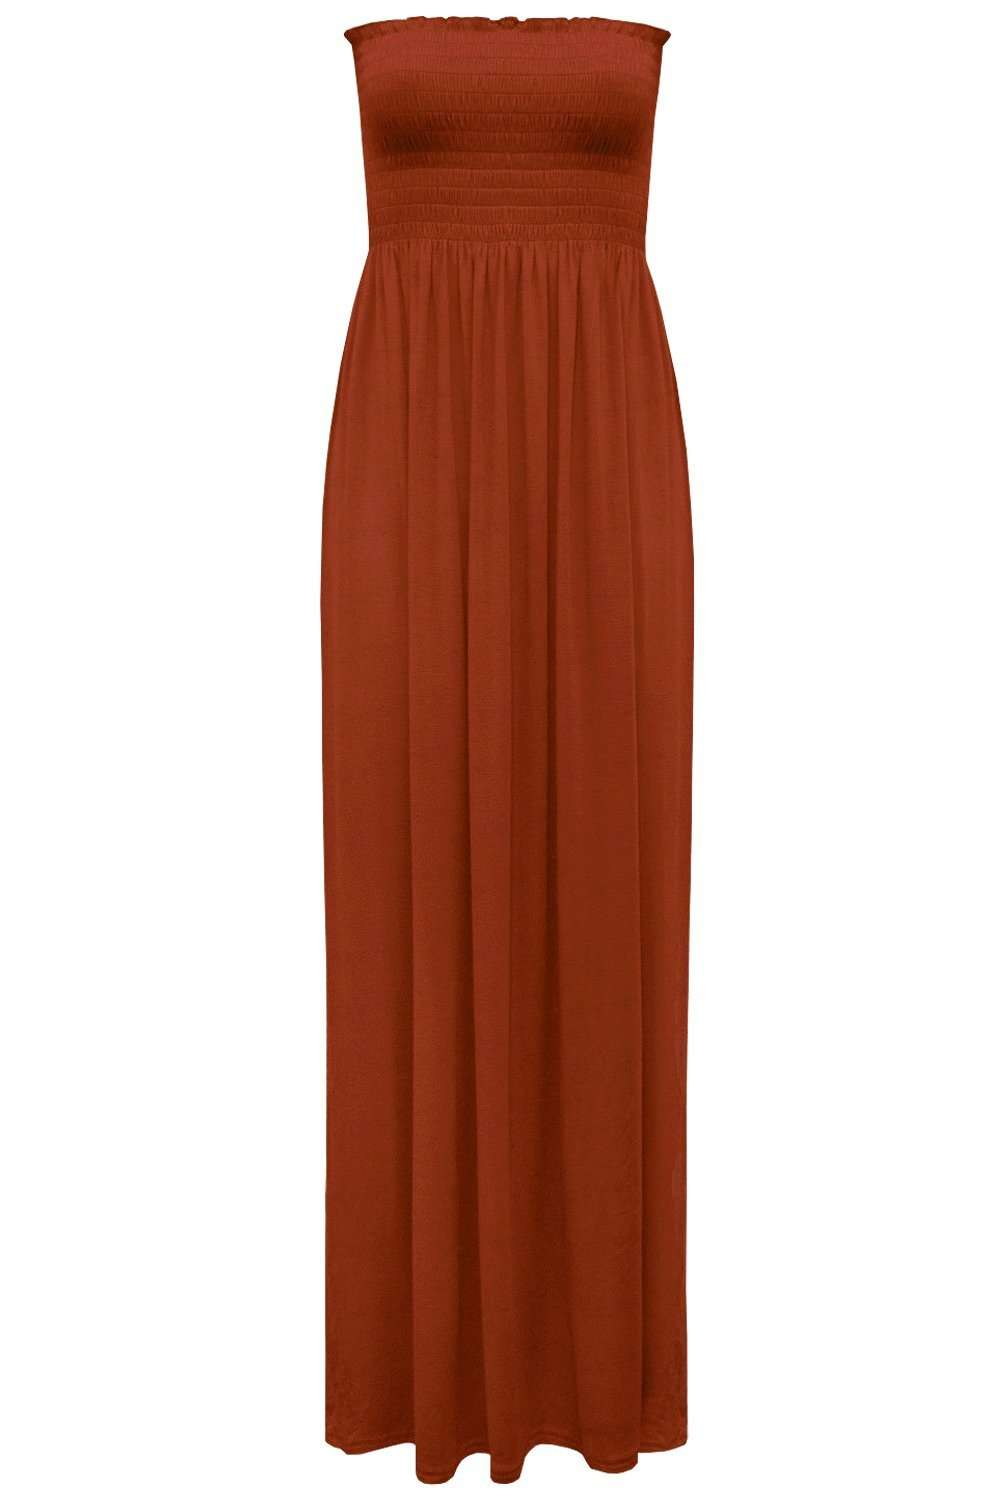 Black Strapless Sheering Bandeau Maxi Dress - bejealous-com